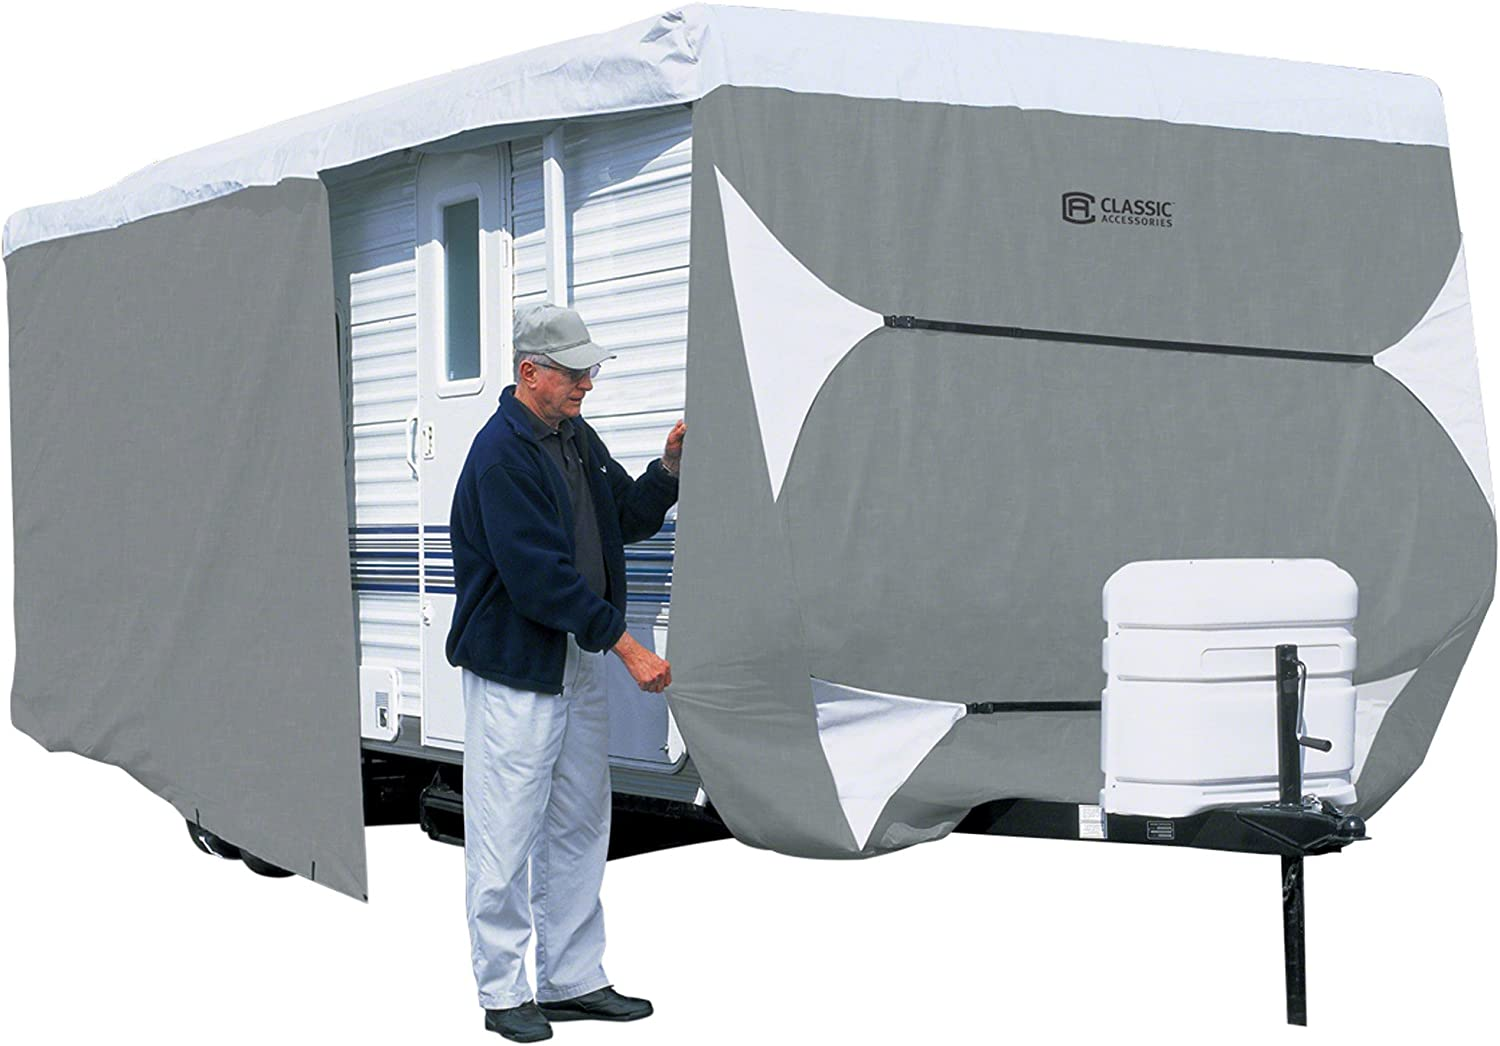 Fits 10-12 Trailers Classic Accessories OverDrive PolyPro 3 Deluxe Folding Camping Trailer Cover